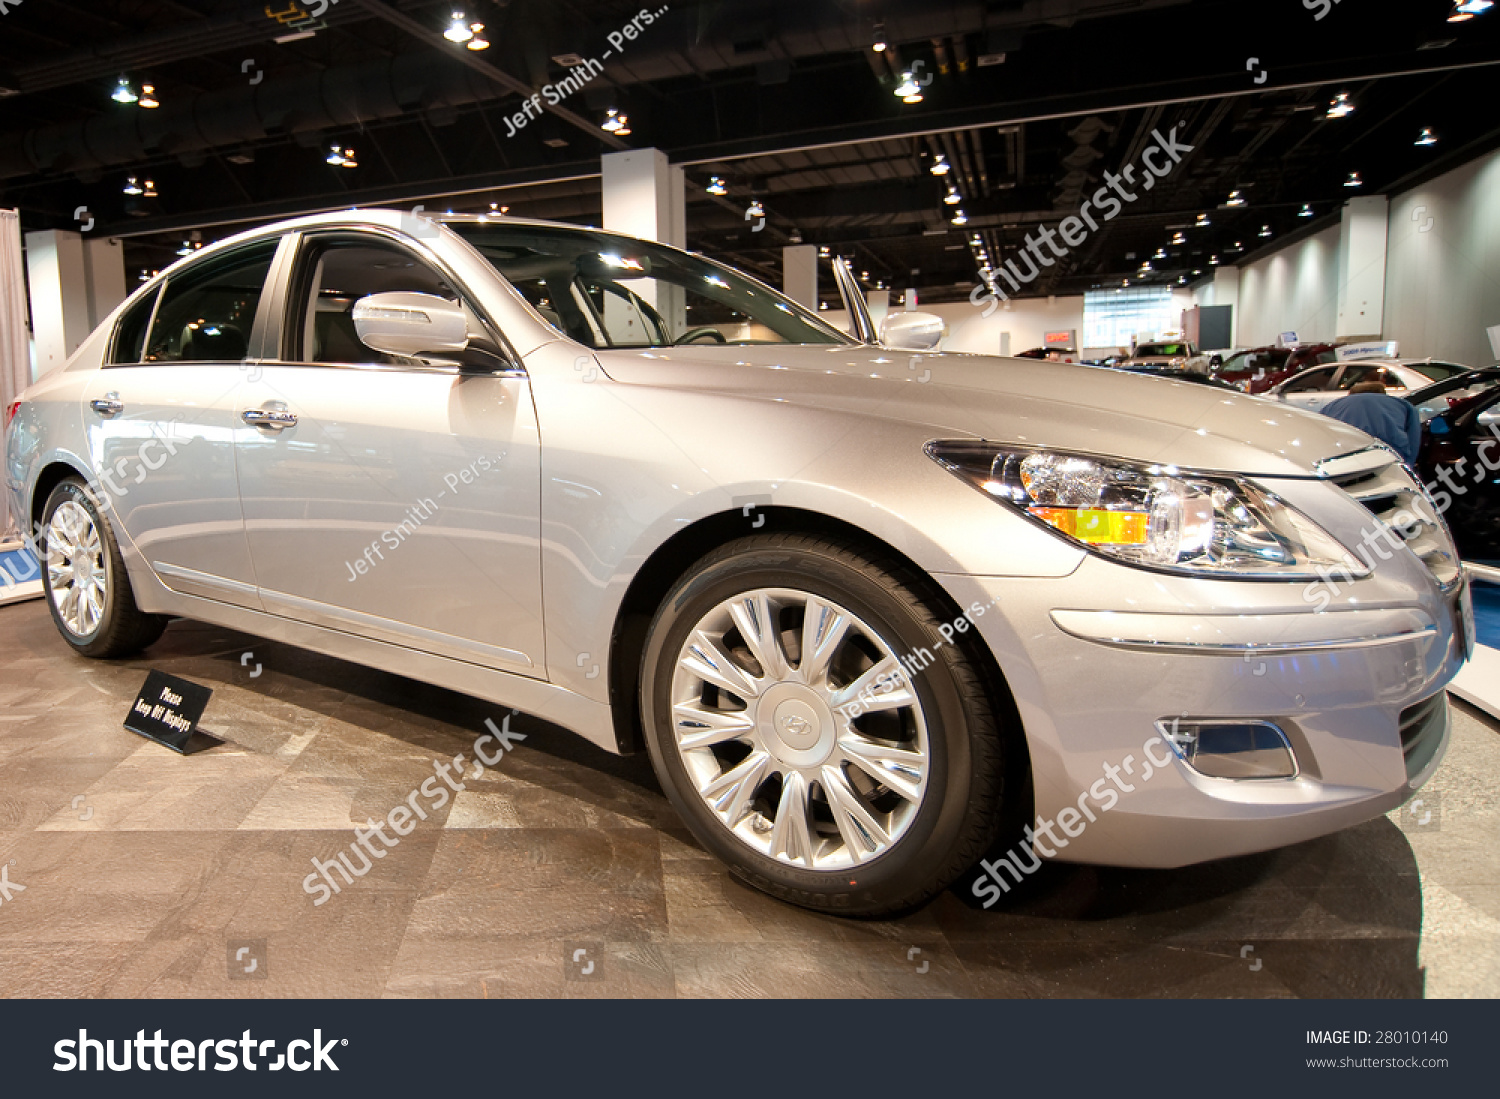 Denver Colorado April 5 2009 Hyundai Stock Photo 28010140 ...